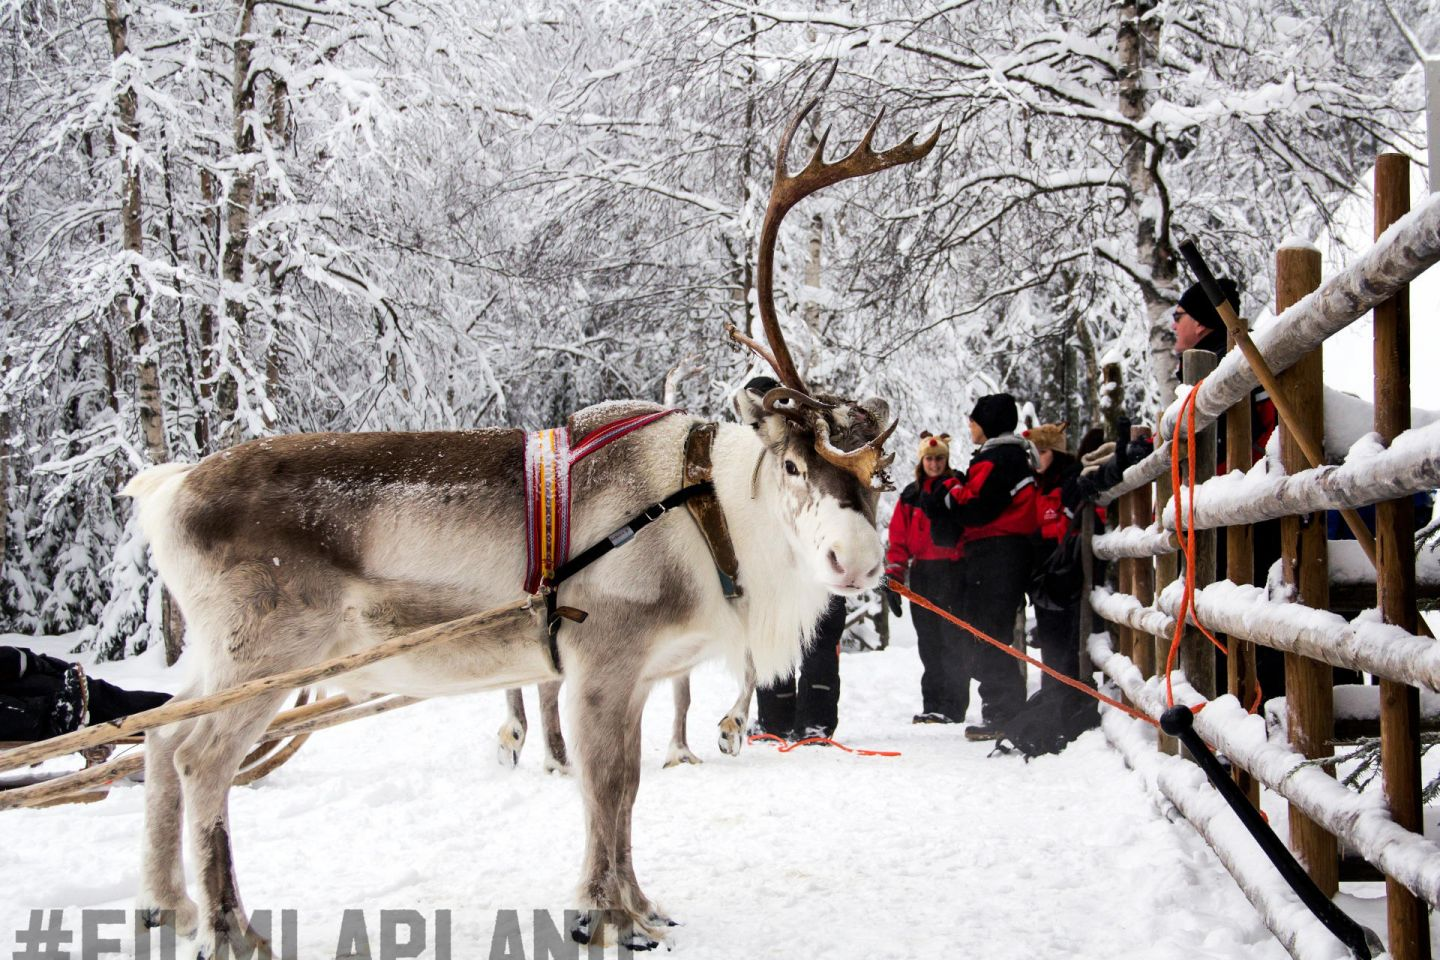 Reindeer waits by the fence at Konttaniemi Farm in Rovaniemi, Finland